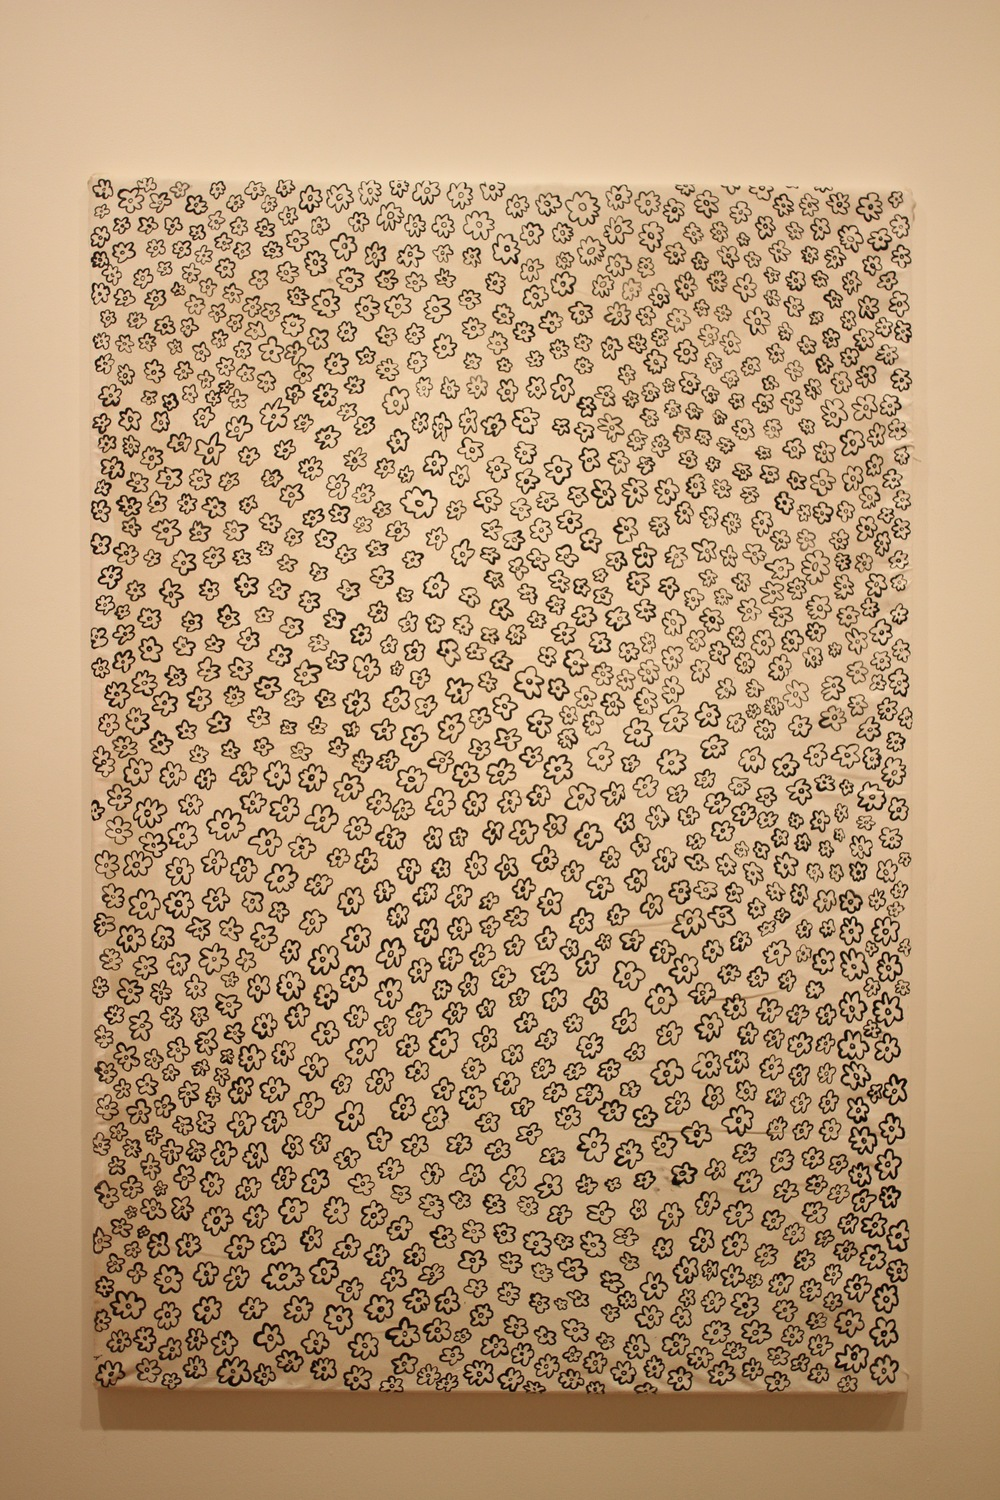 many-tittied-splats. 2015. Acrylic on Canvas